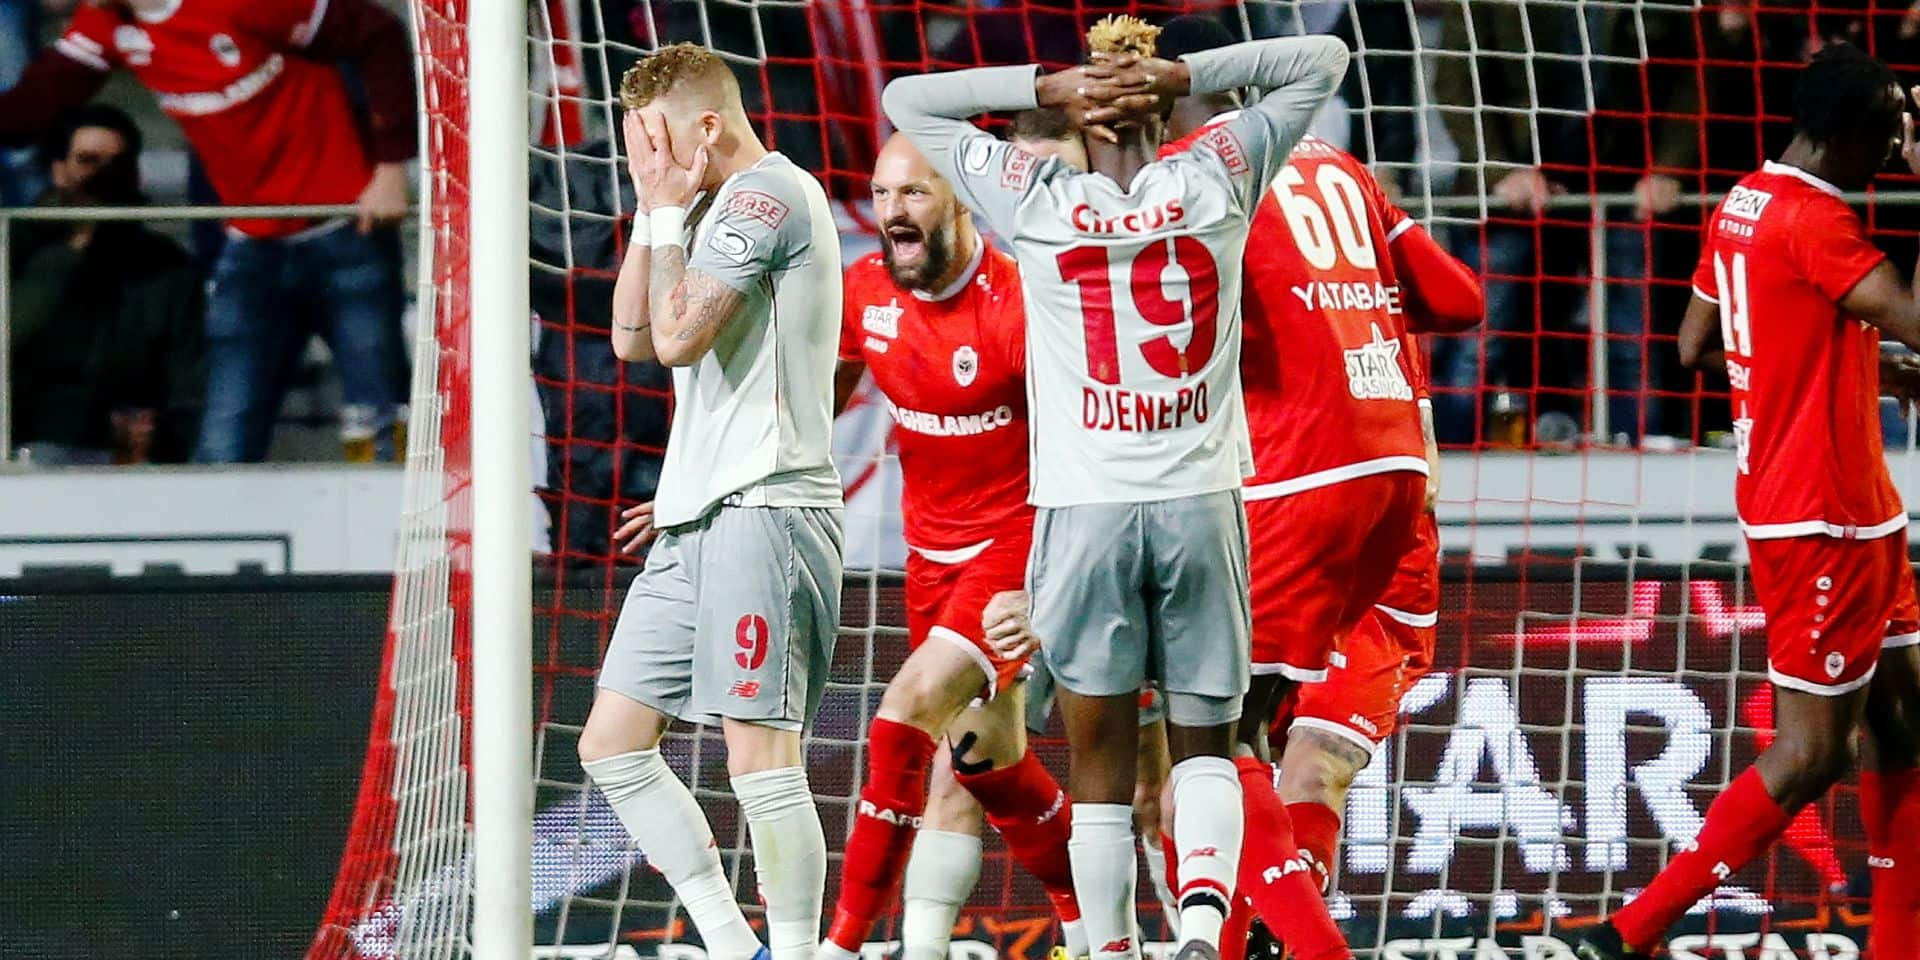 Standard's Renaud Emond reacts during a soccer match between Royal Antwerp FC and Standard de Liege, Friday 26 April 2019 in Antwerp, on day 6 (out of 10) of the Play-off 1 of the 'Jupiler Pro League' Belgian soccer championship. BELGA PHOTO BRUNO FAHY